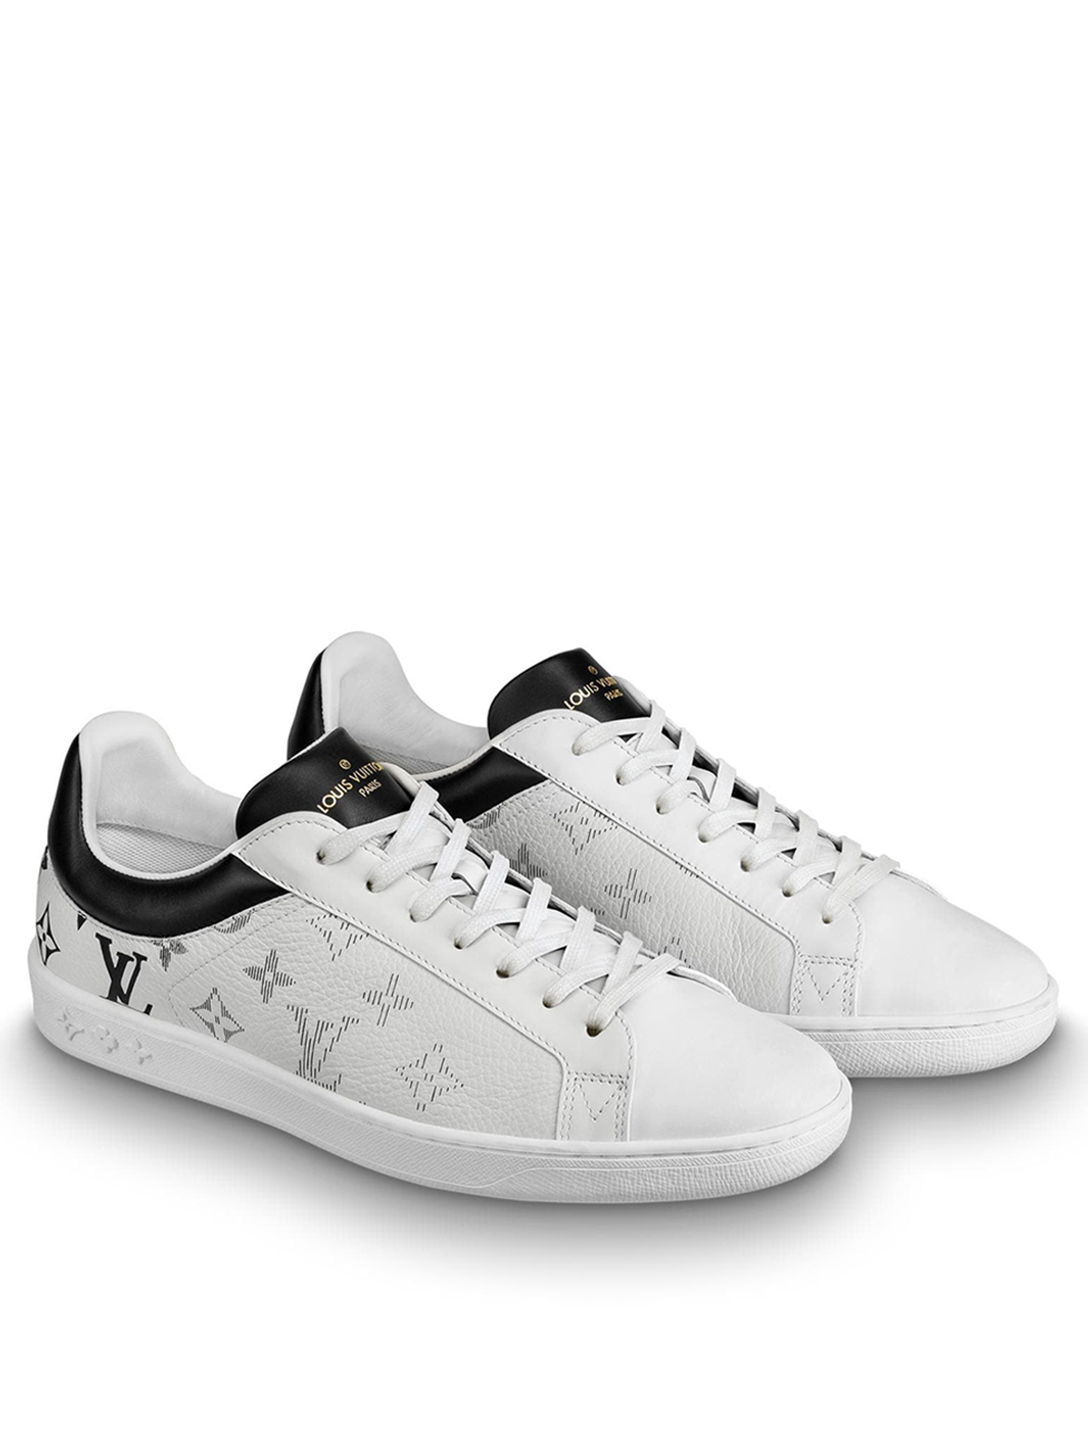 LOUIS VUITTON Luxembourg Sneaker Designers